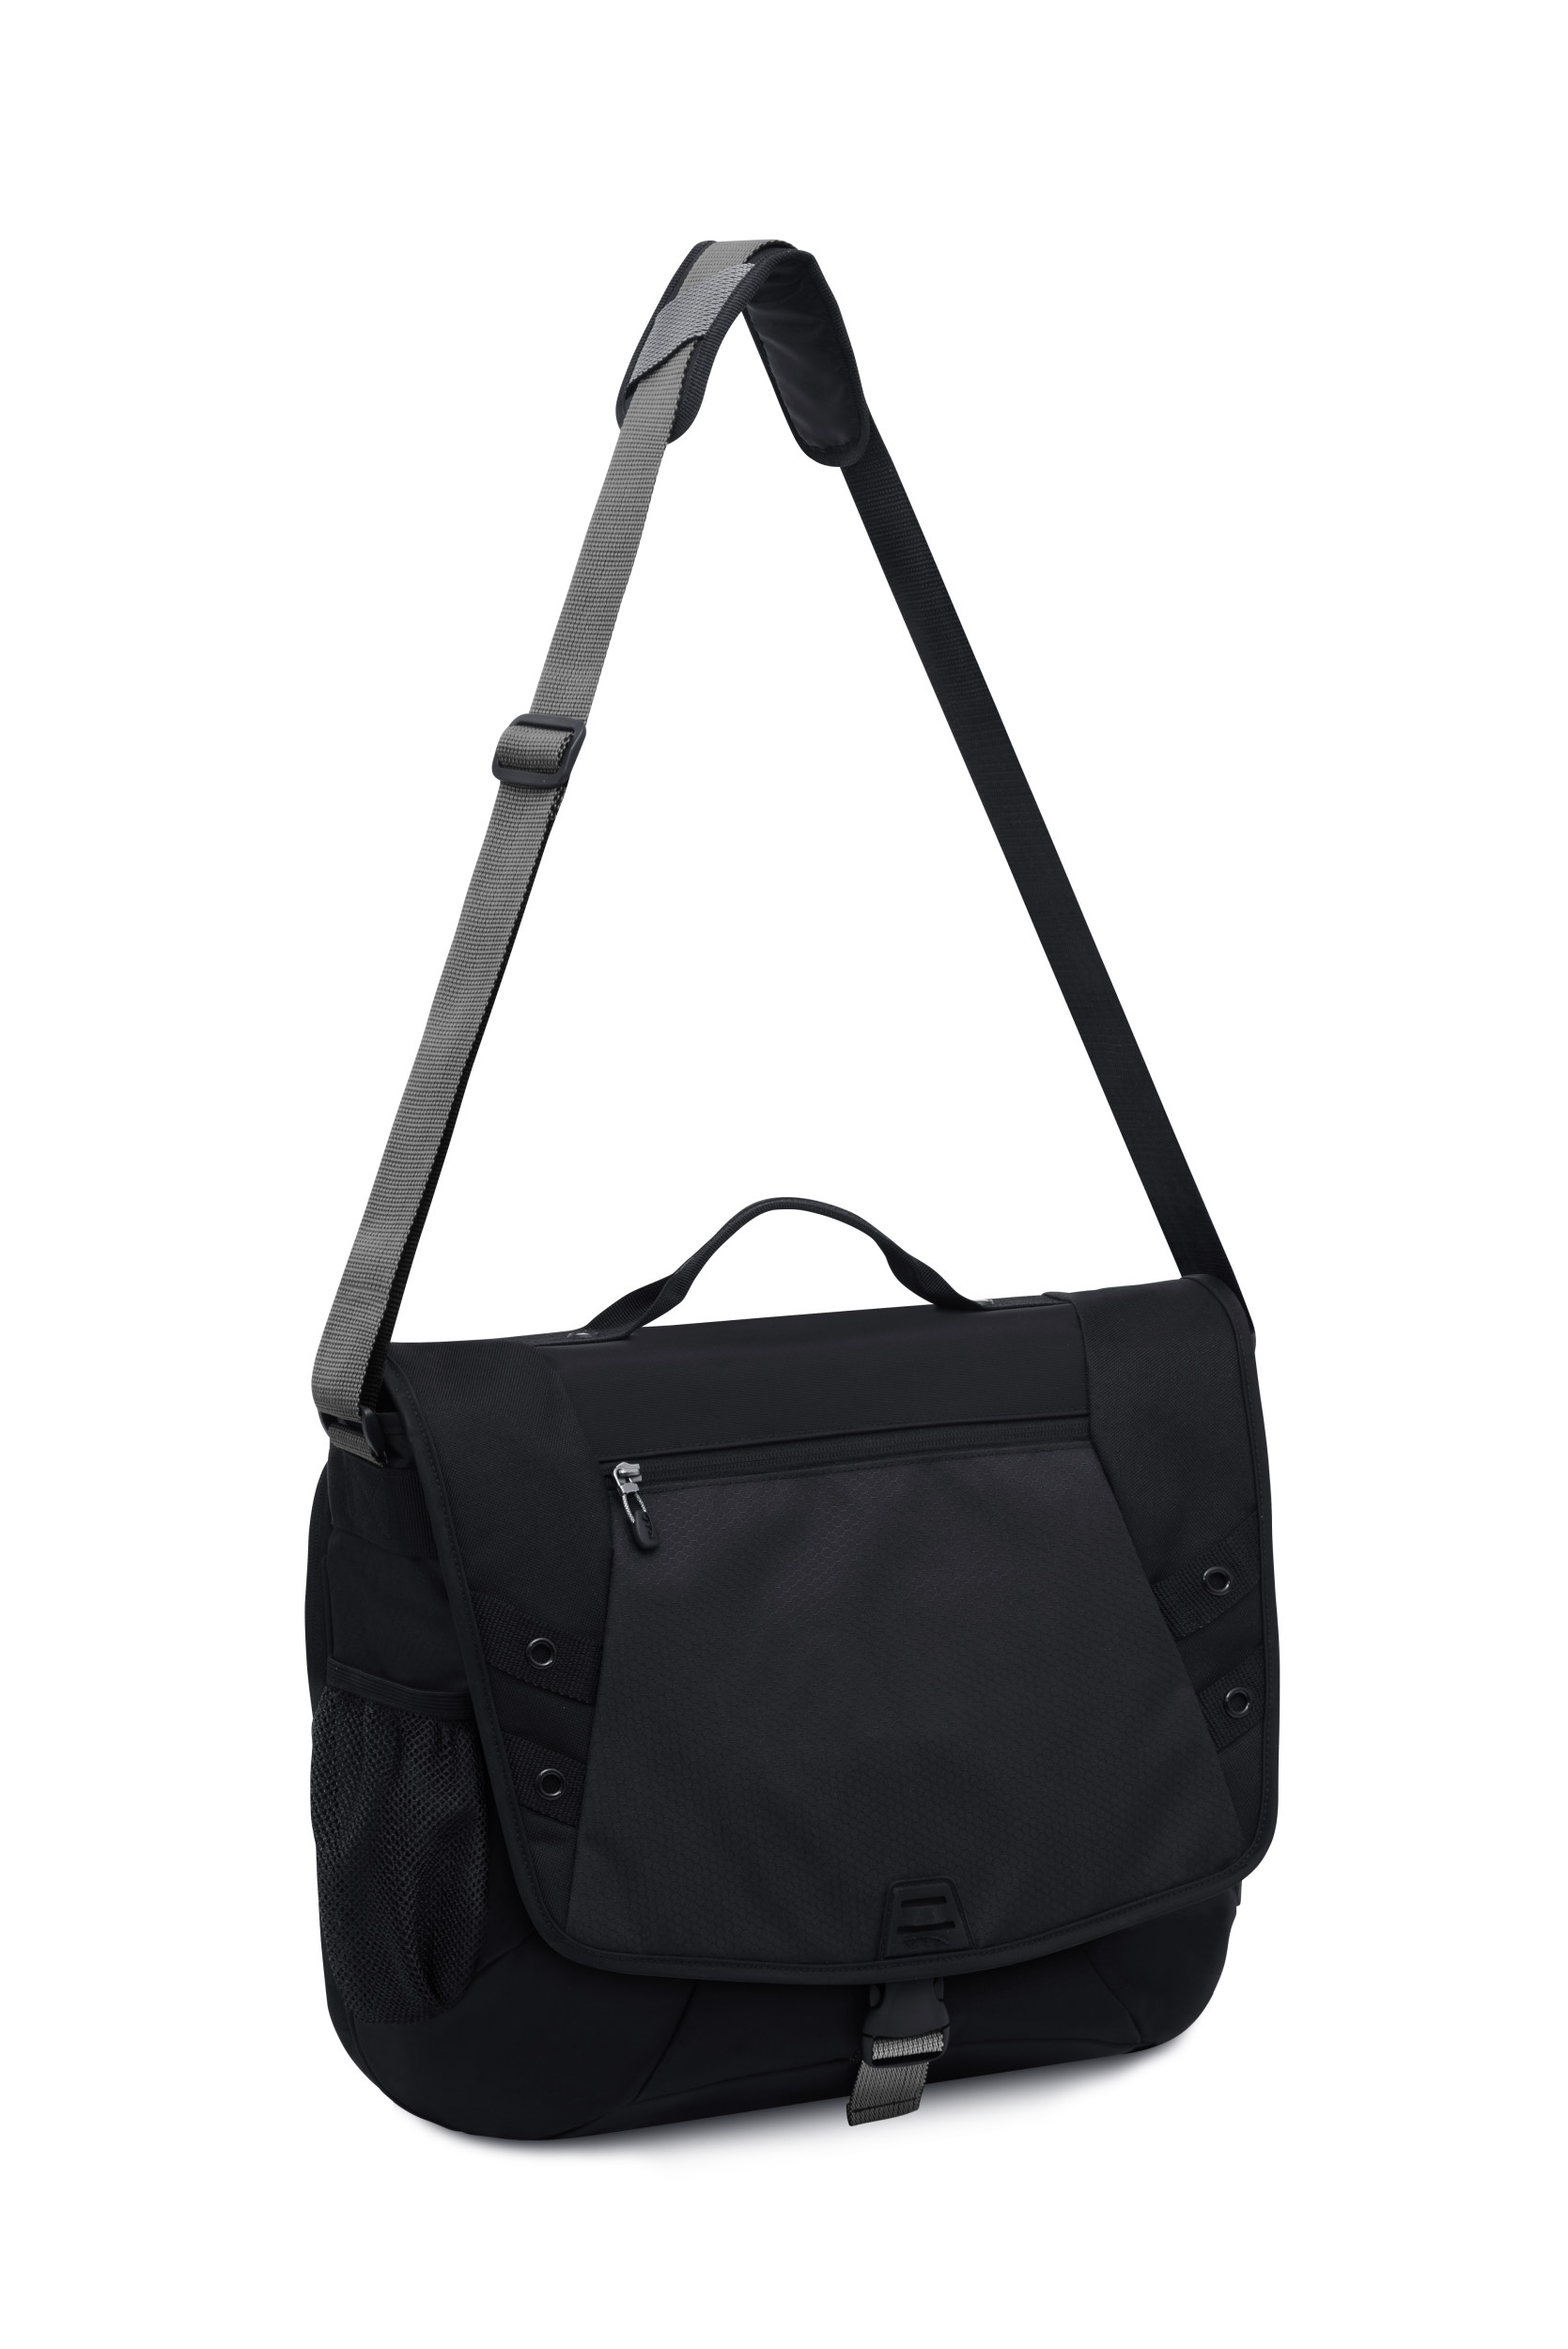 Vertex 5382 Condor Computer Messenger Bag